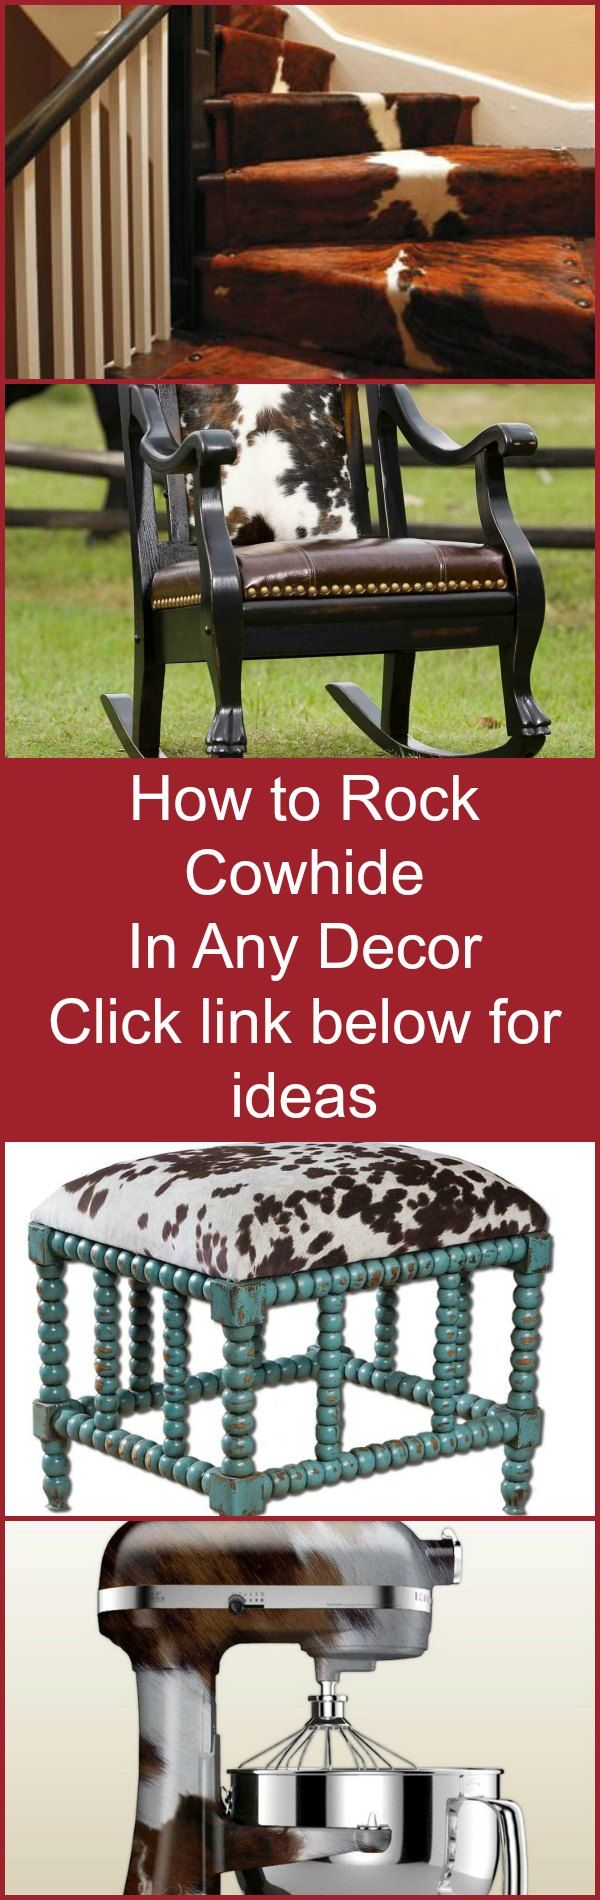 Tips and Ideas for Decorating with Cowhide whether your home is rustic, contemporary, traditional or elegant.  Find out how in the Rustic Artistry newsletter.  Sign up at this link ->  http://rusticartistry.com/sign-now/